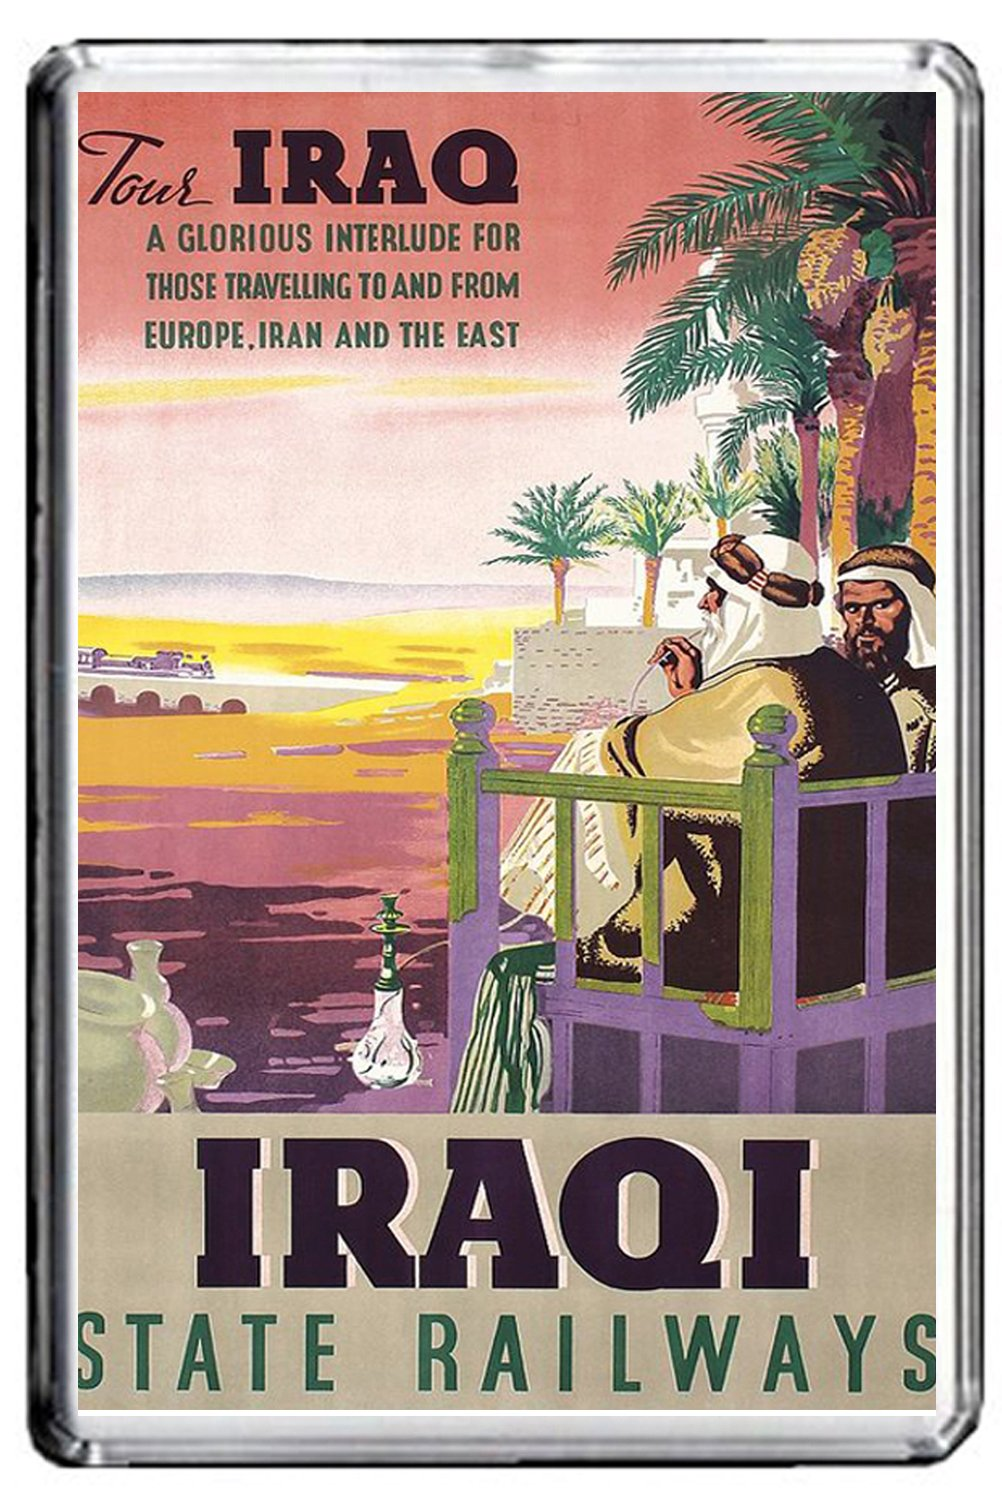 CFL B130 IRAQ FRIDGE MAGNET IRAN VINTAGE TRAVEL PHOTO MAGNETICA CALAMITA FRIGO